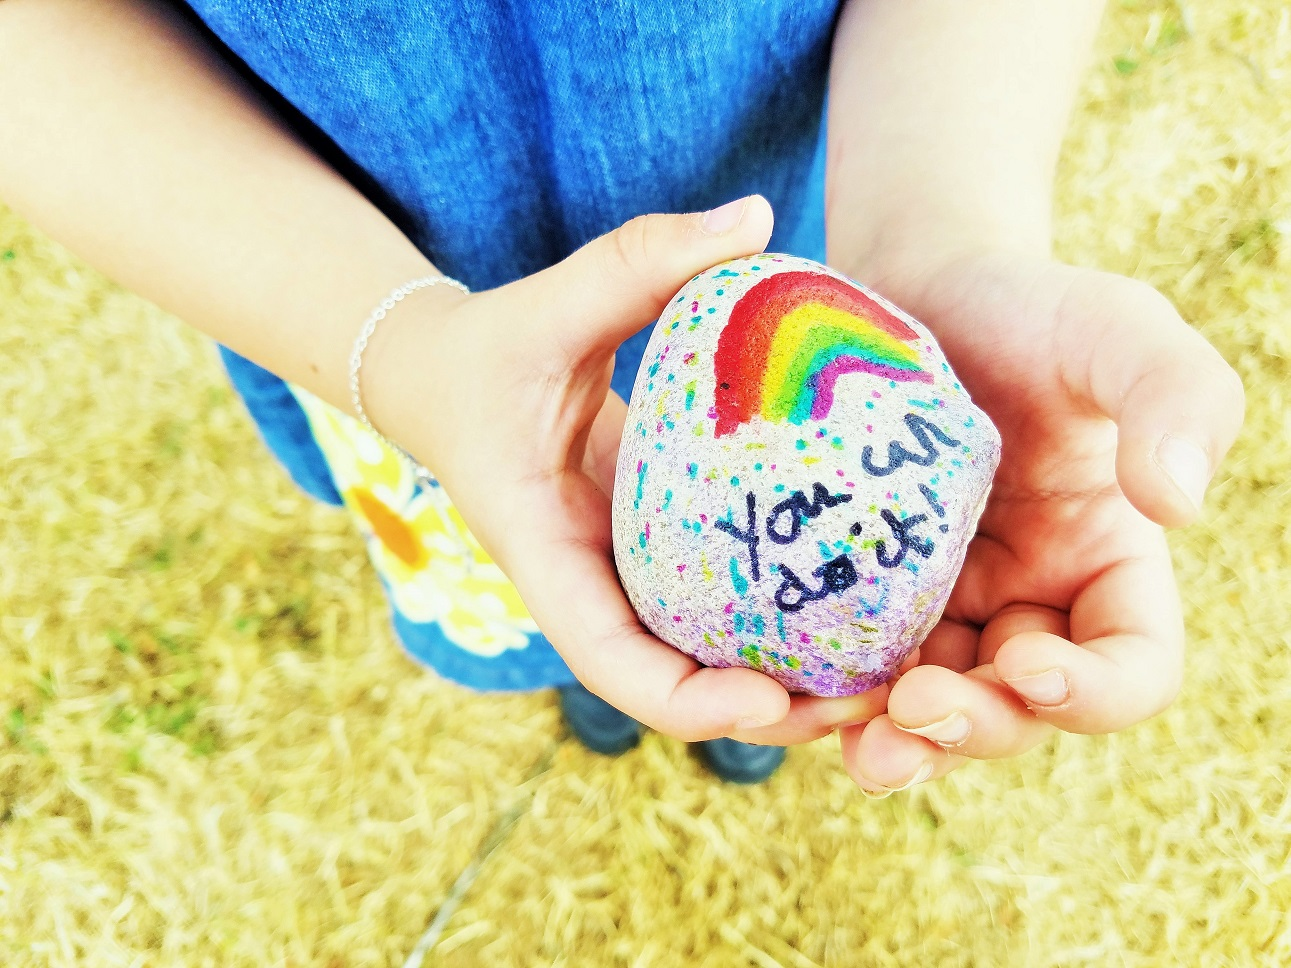 The End of Key Stage 1 and a Summer of Rest - child holding painted rock which says You Can Do It